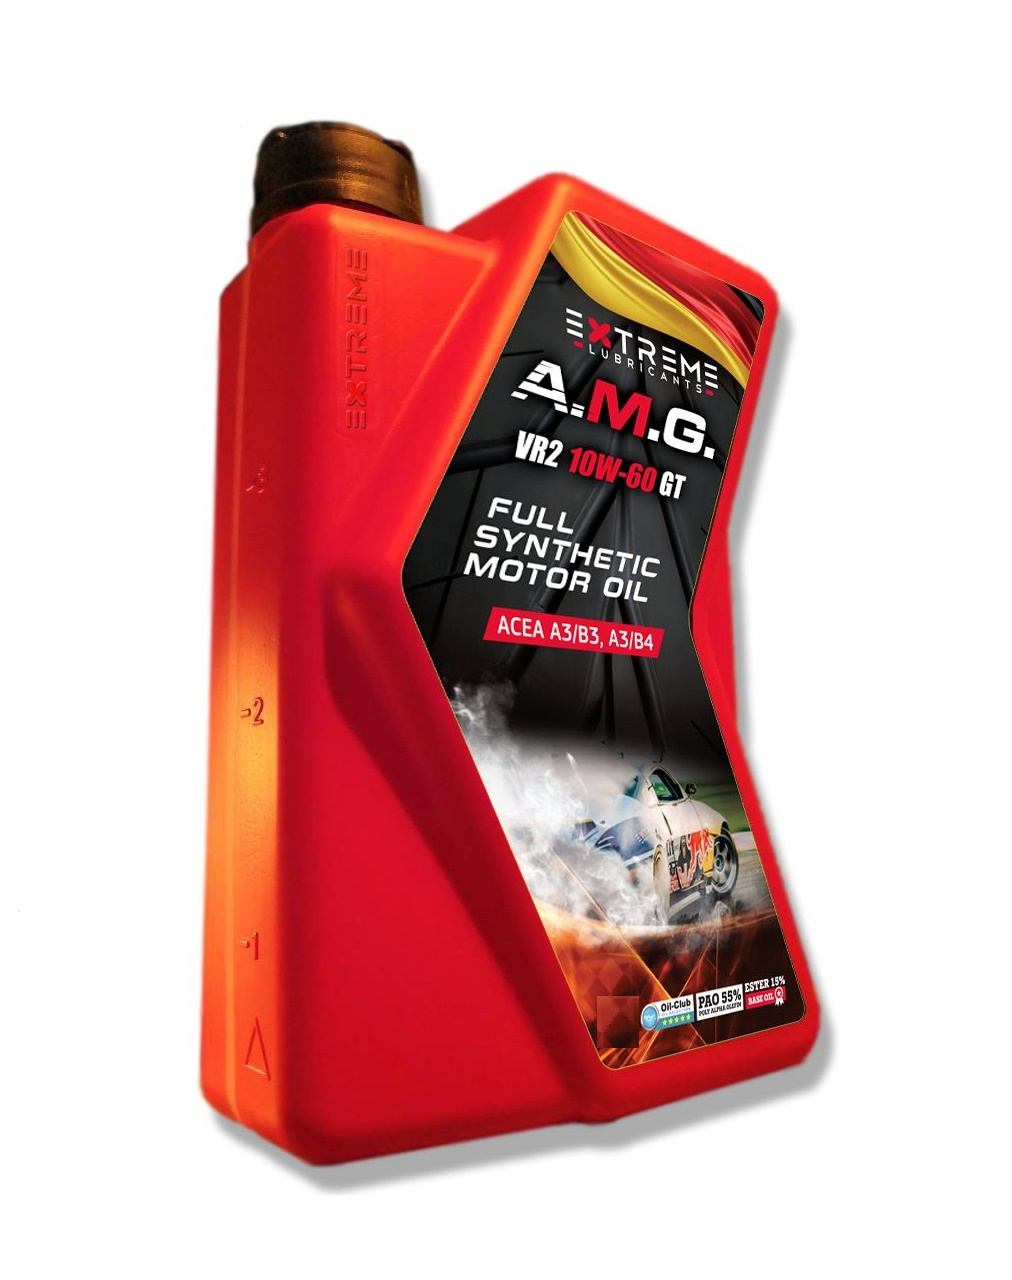 EXTREME A.M.G VR2 10W-60 GT 1L